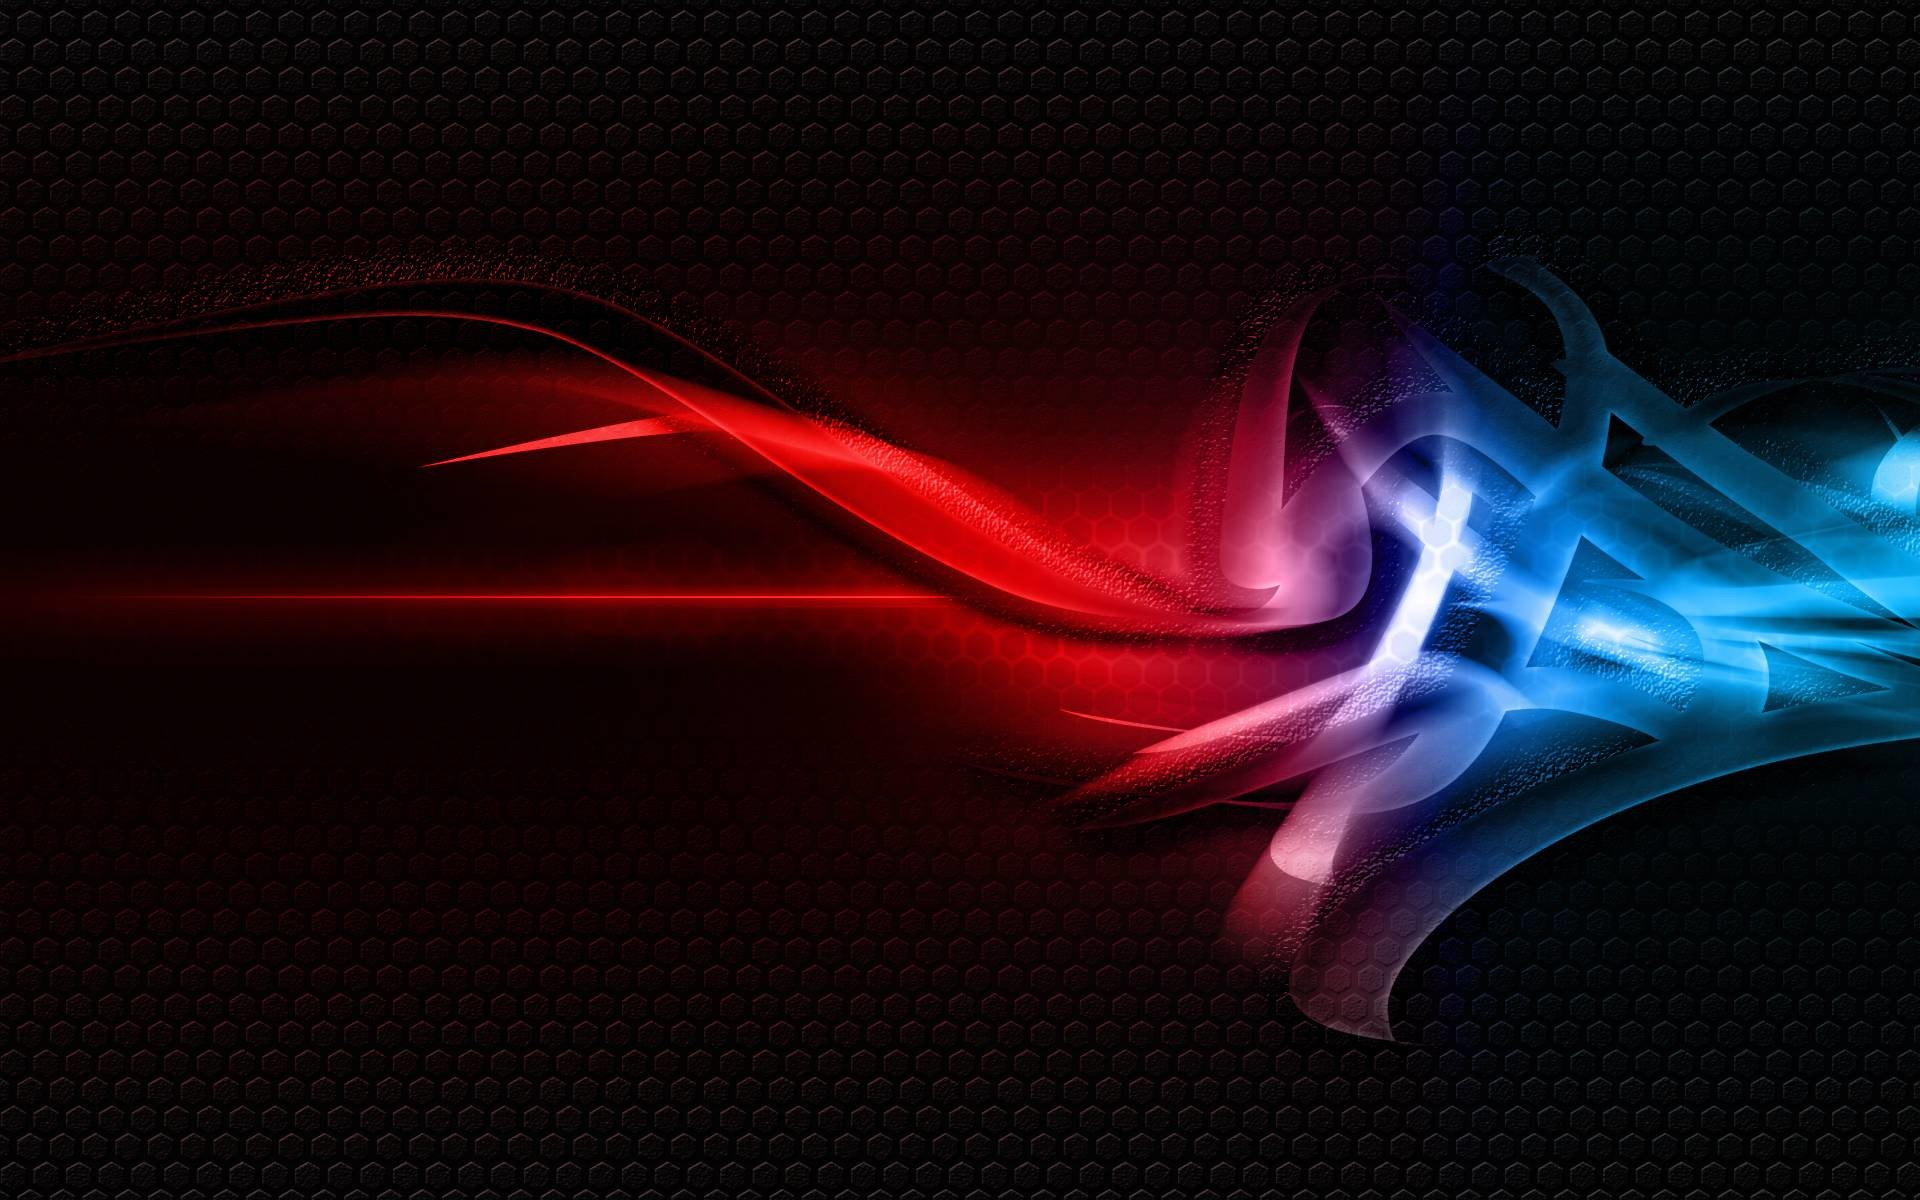 Download Red And Blue Abstract Wallpaper   Full HD .